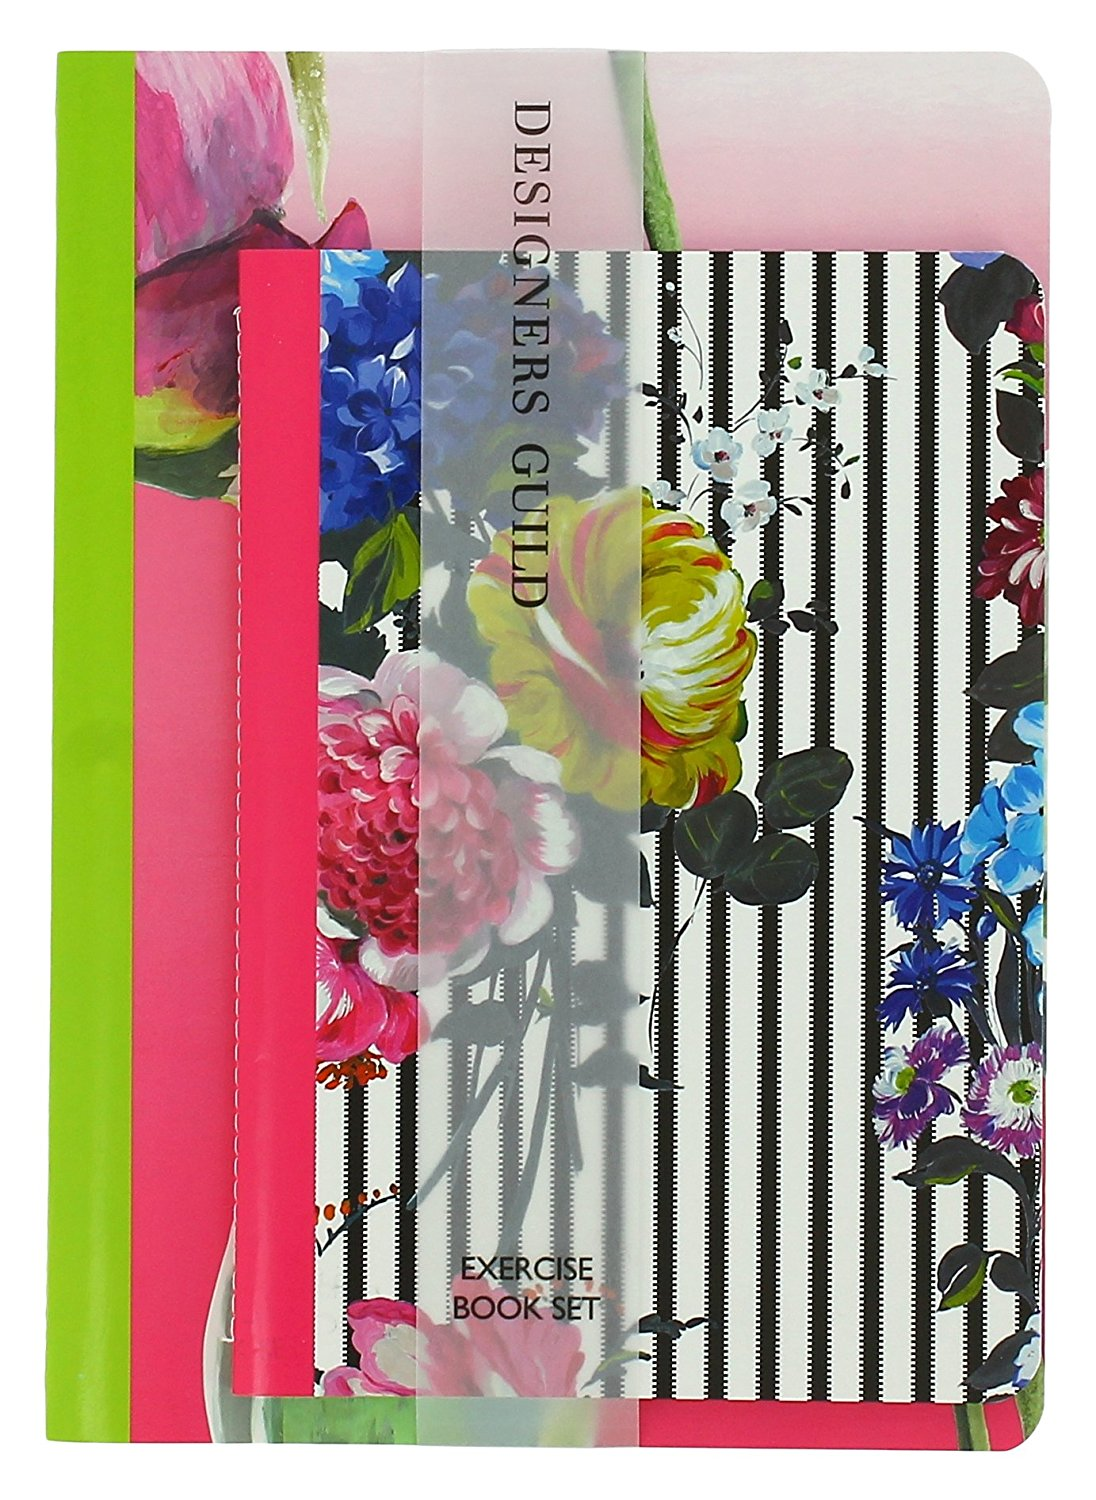 Designer's Guild Exercise Book Set - Fabulous bright summer florals at their best. More of the blog post...